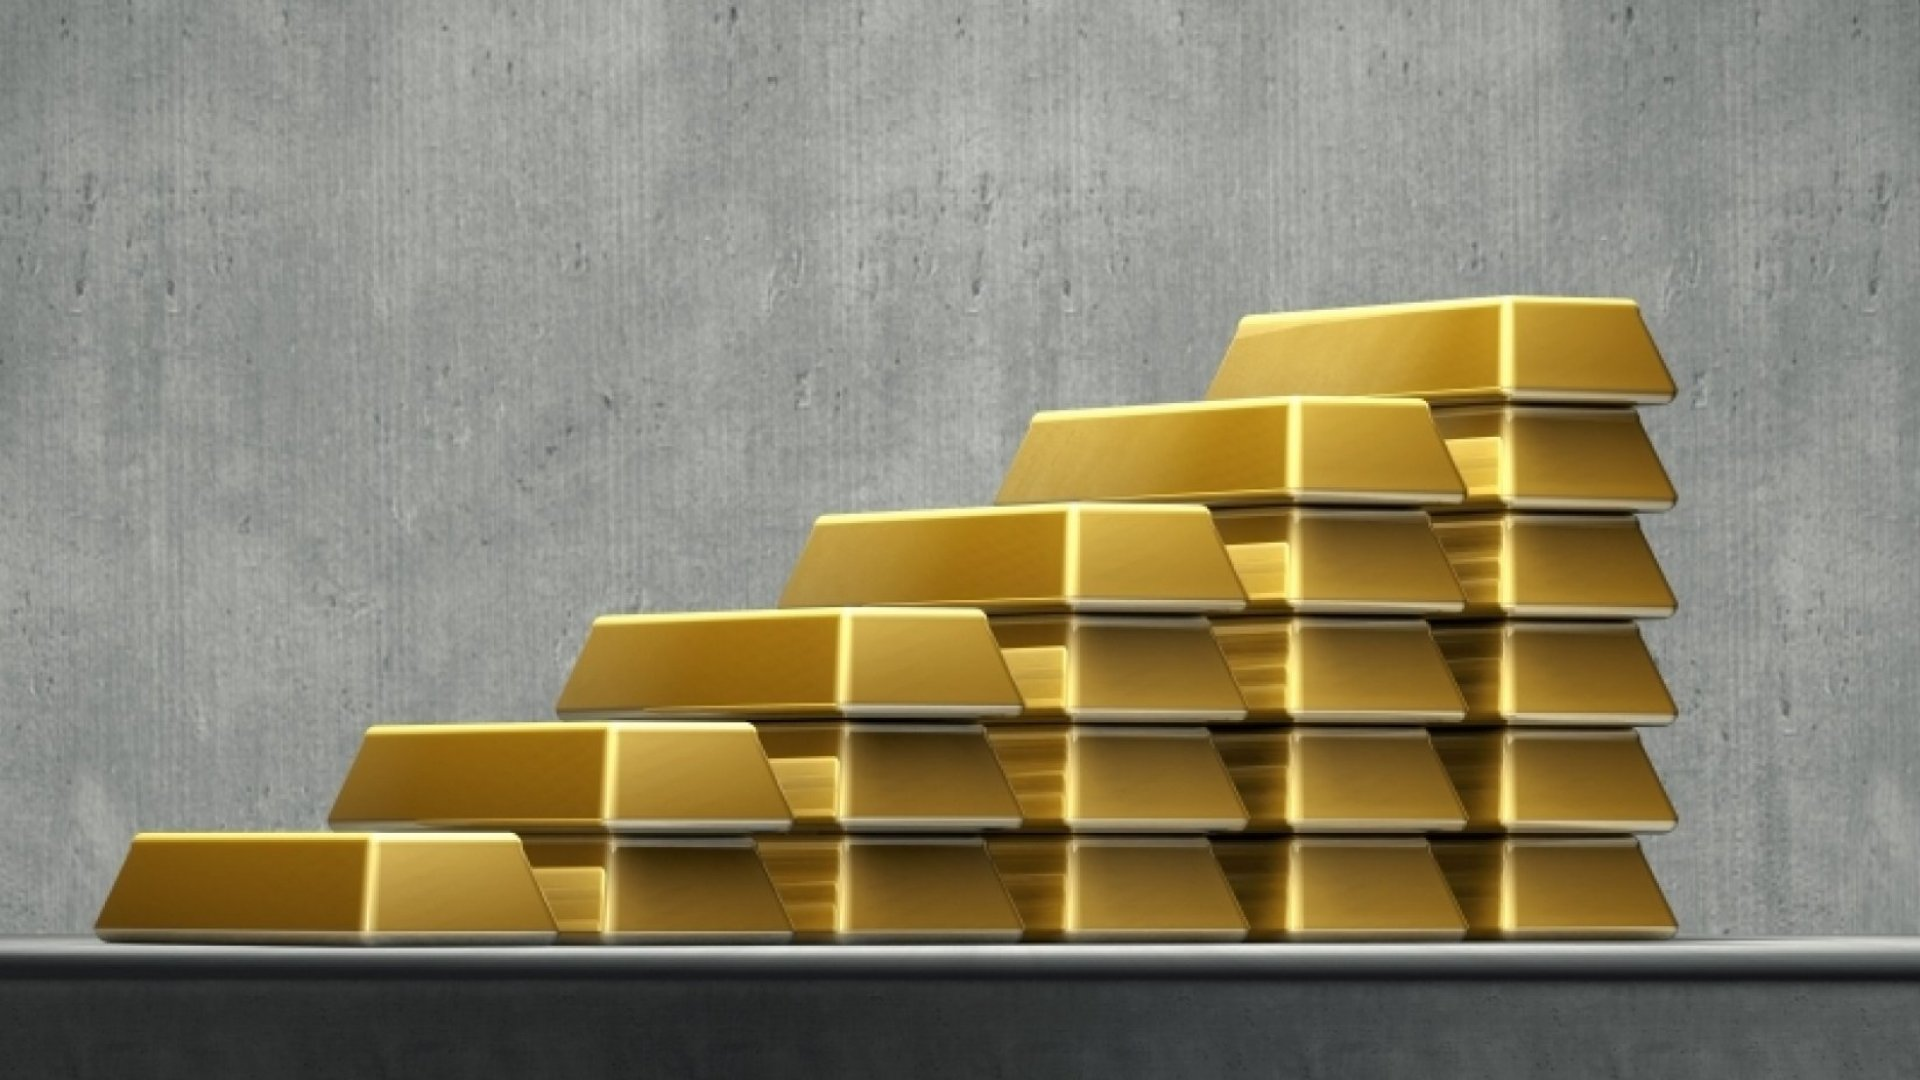 Turn Your Business into a Growth Machine with the Golden Rule